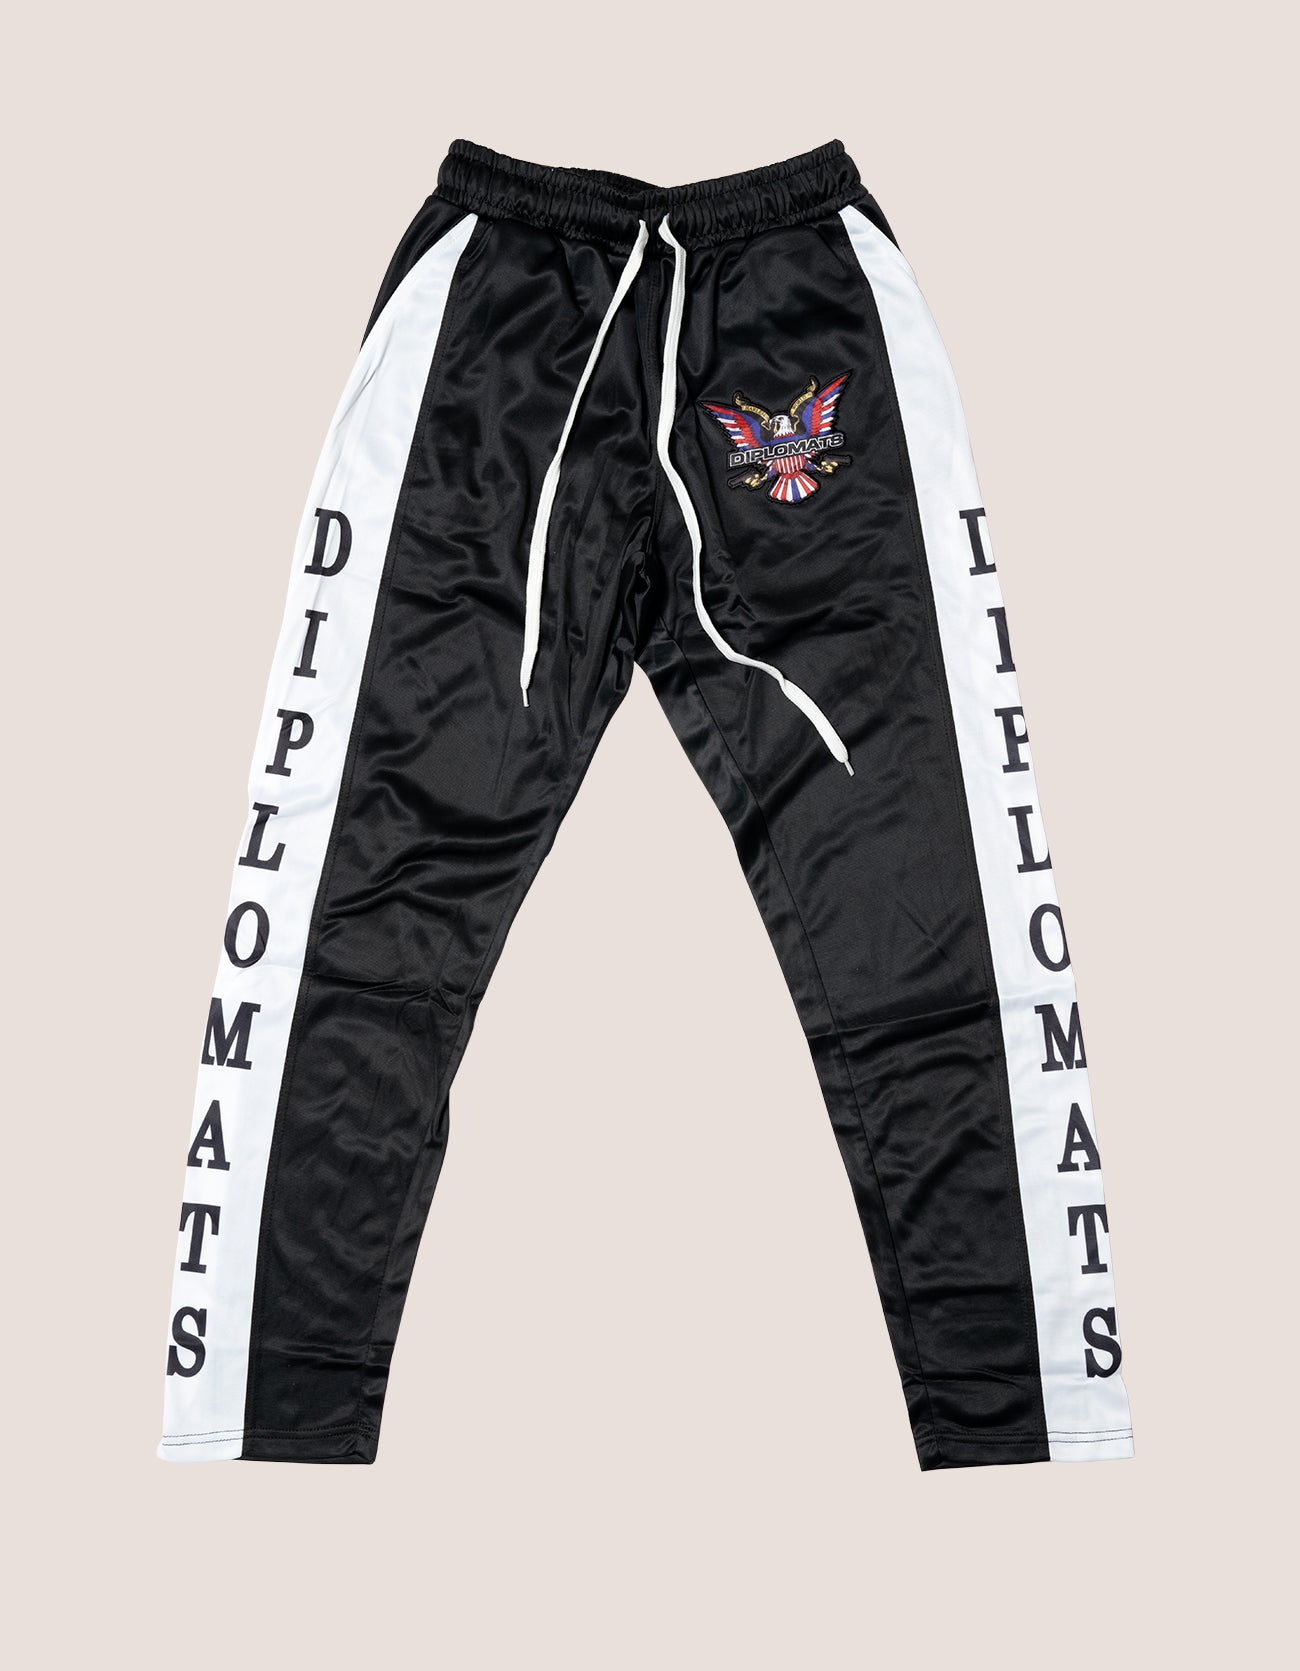 DIPSET Couture Black/White Classic Track Suit